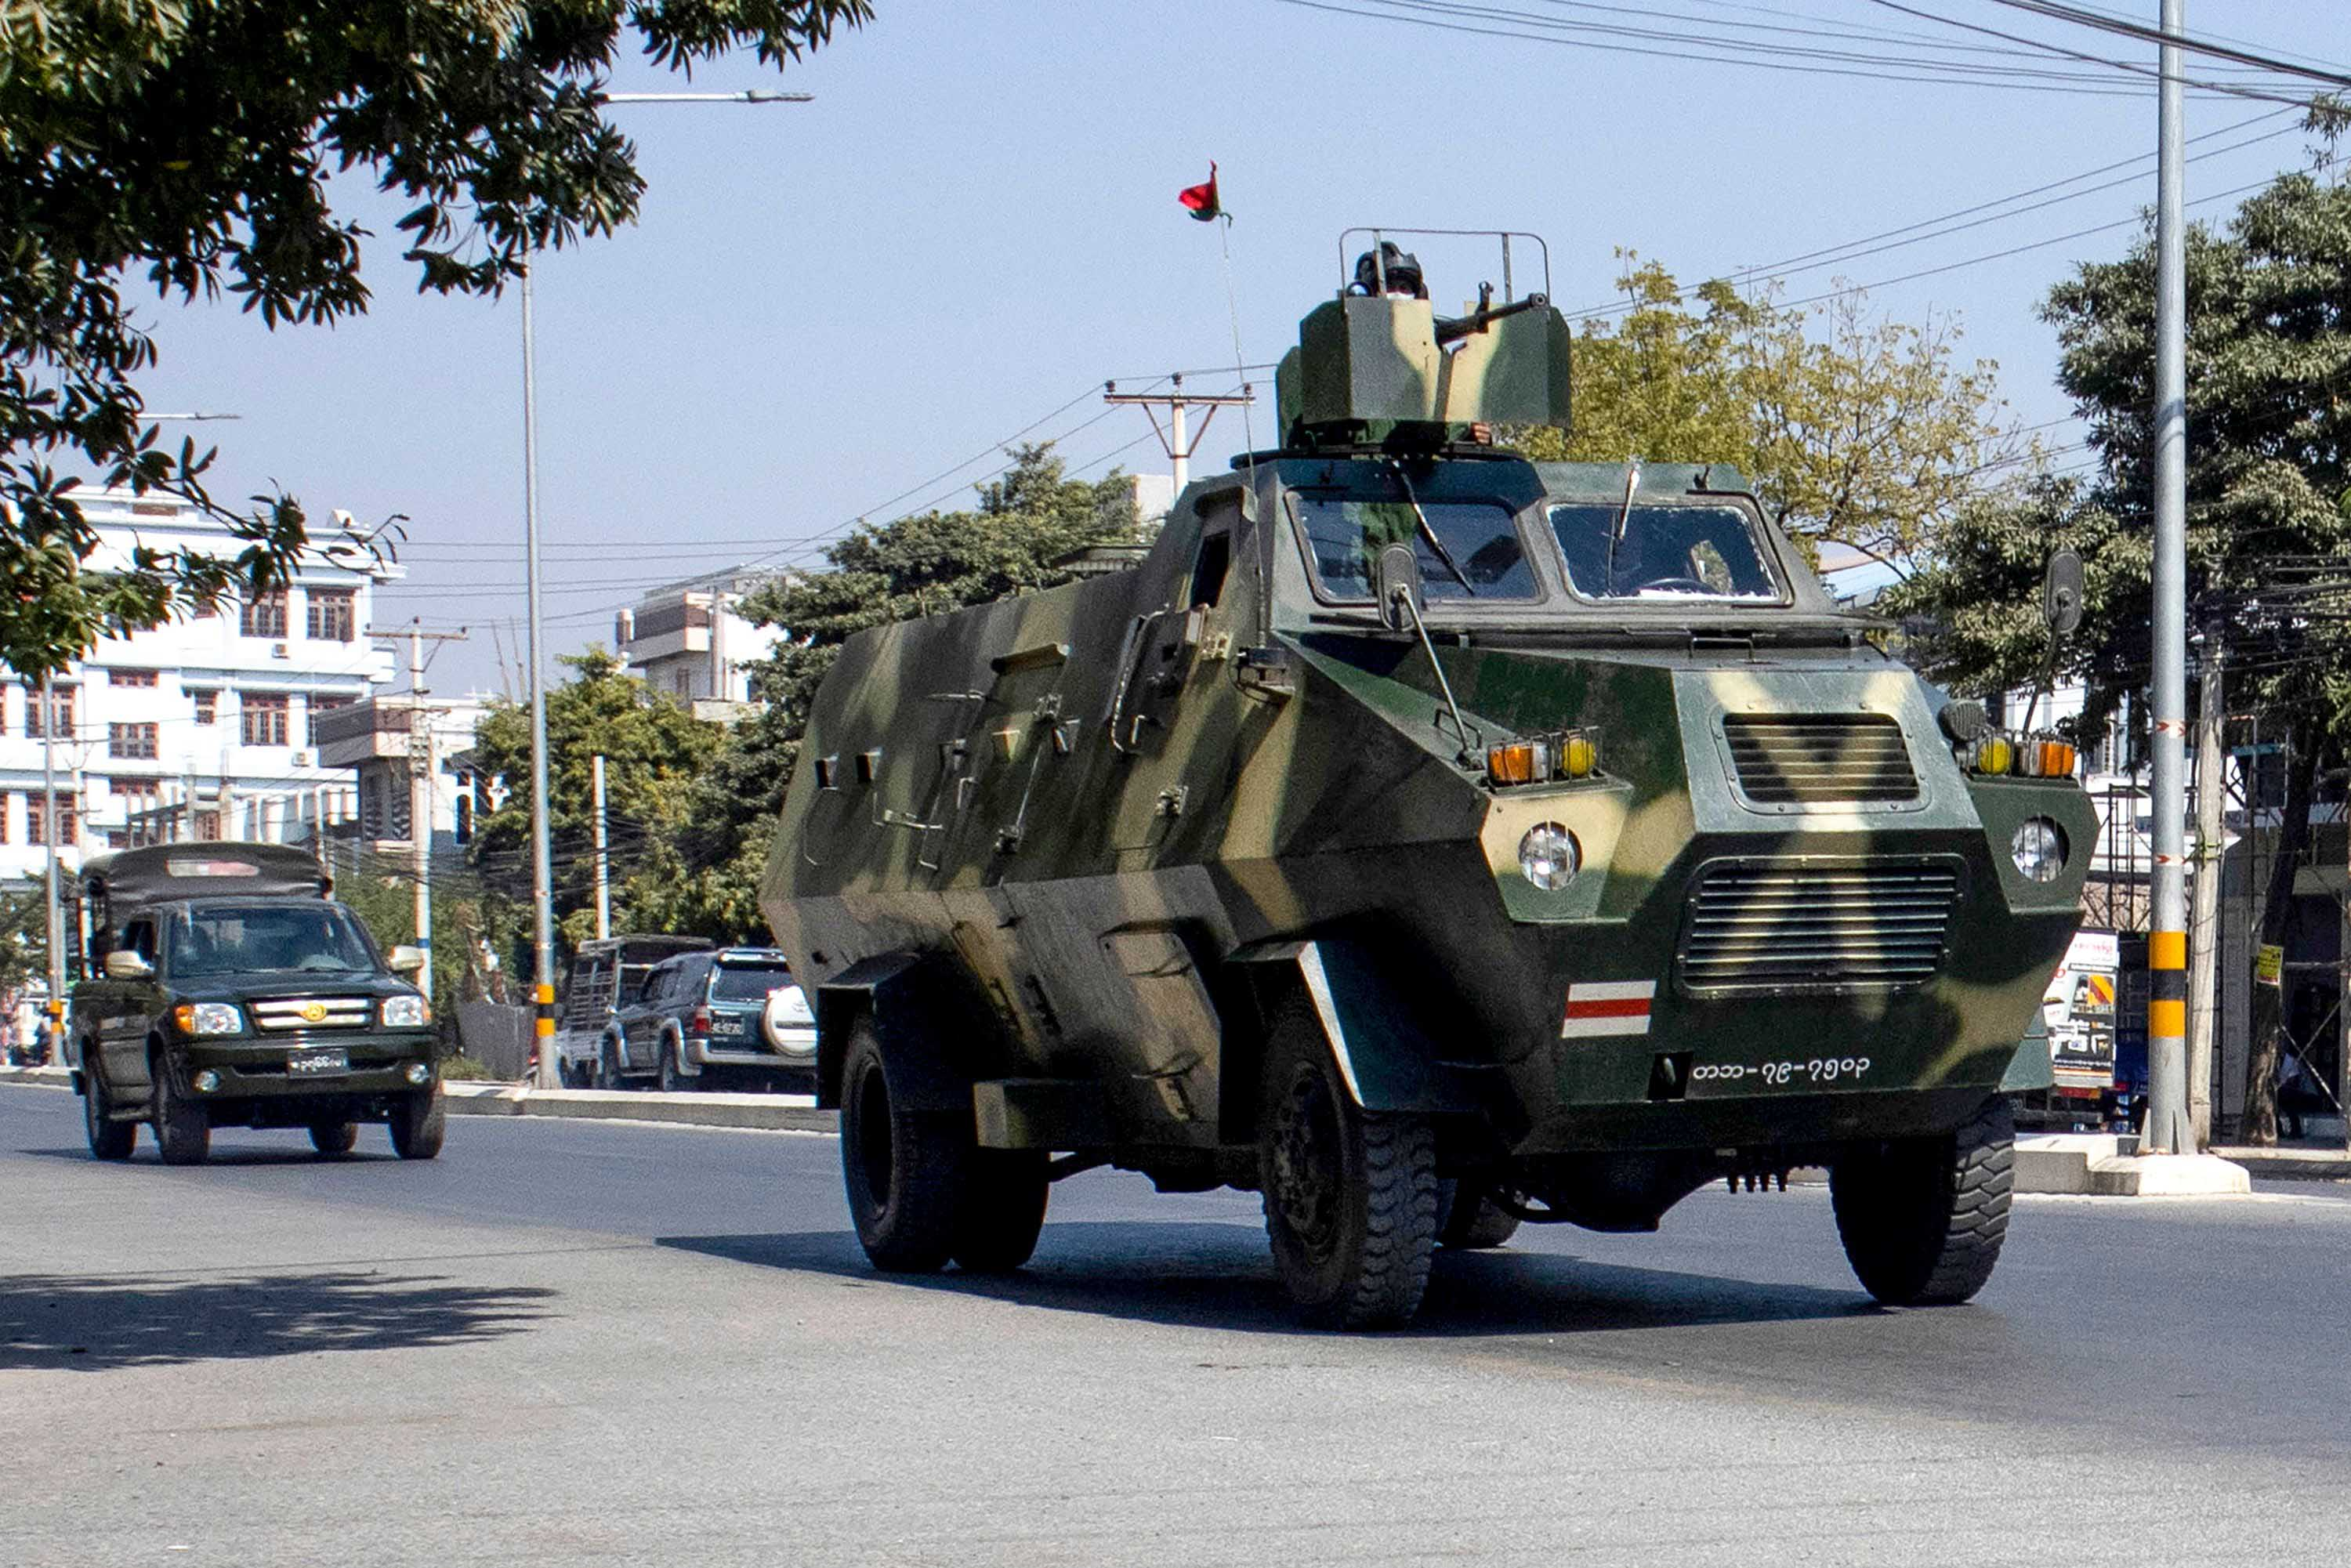 Military vehicles are seen along a street in Mandalay, Myanmar, on February 2.